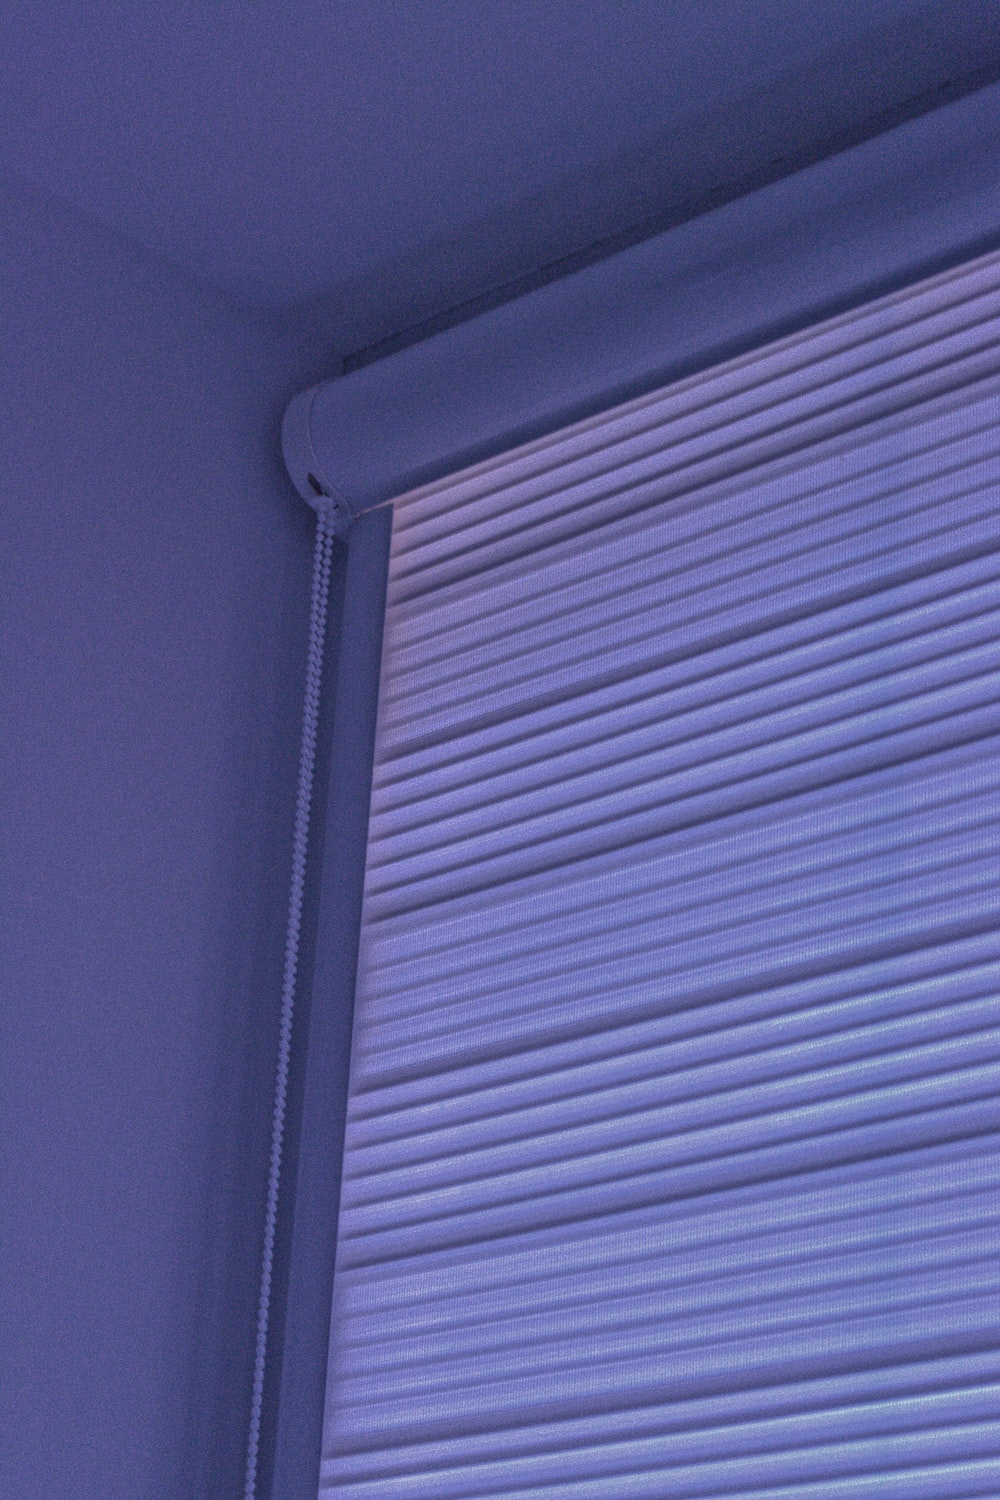 white and black window blinds